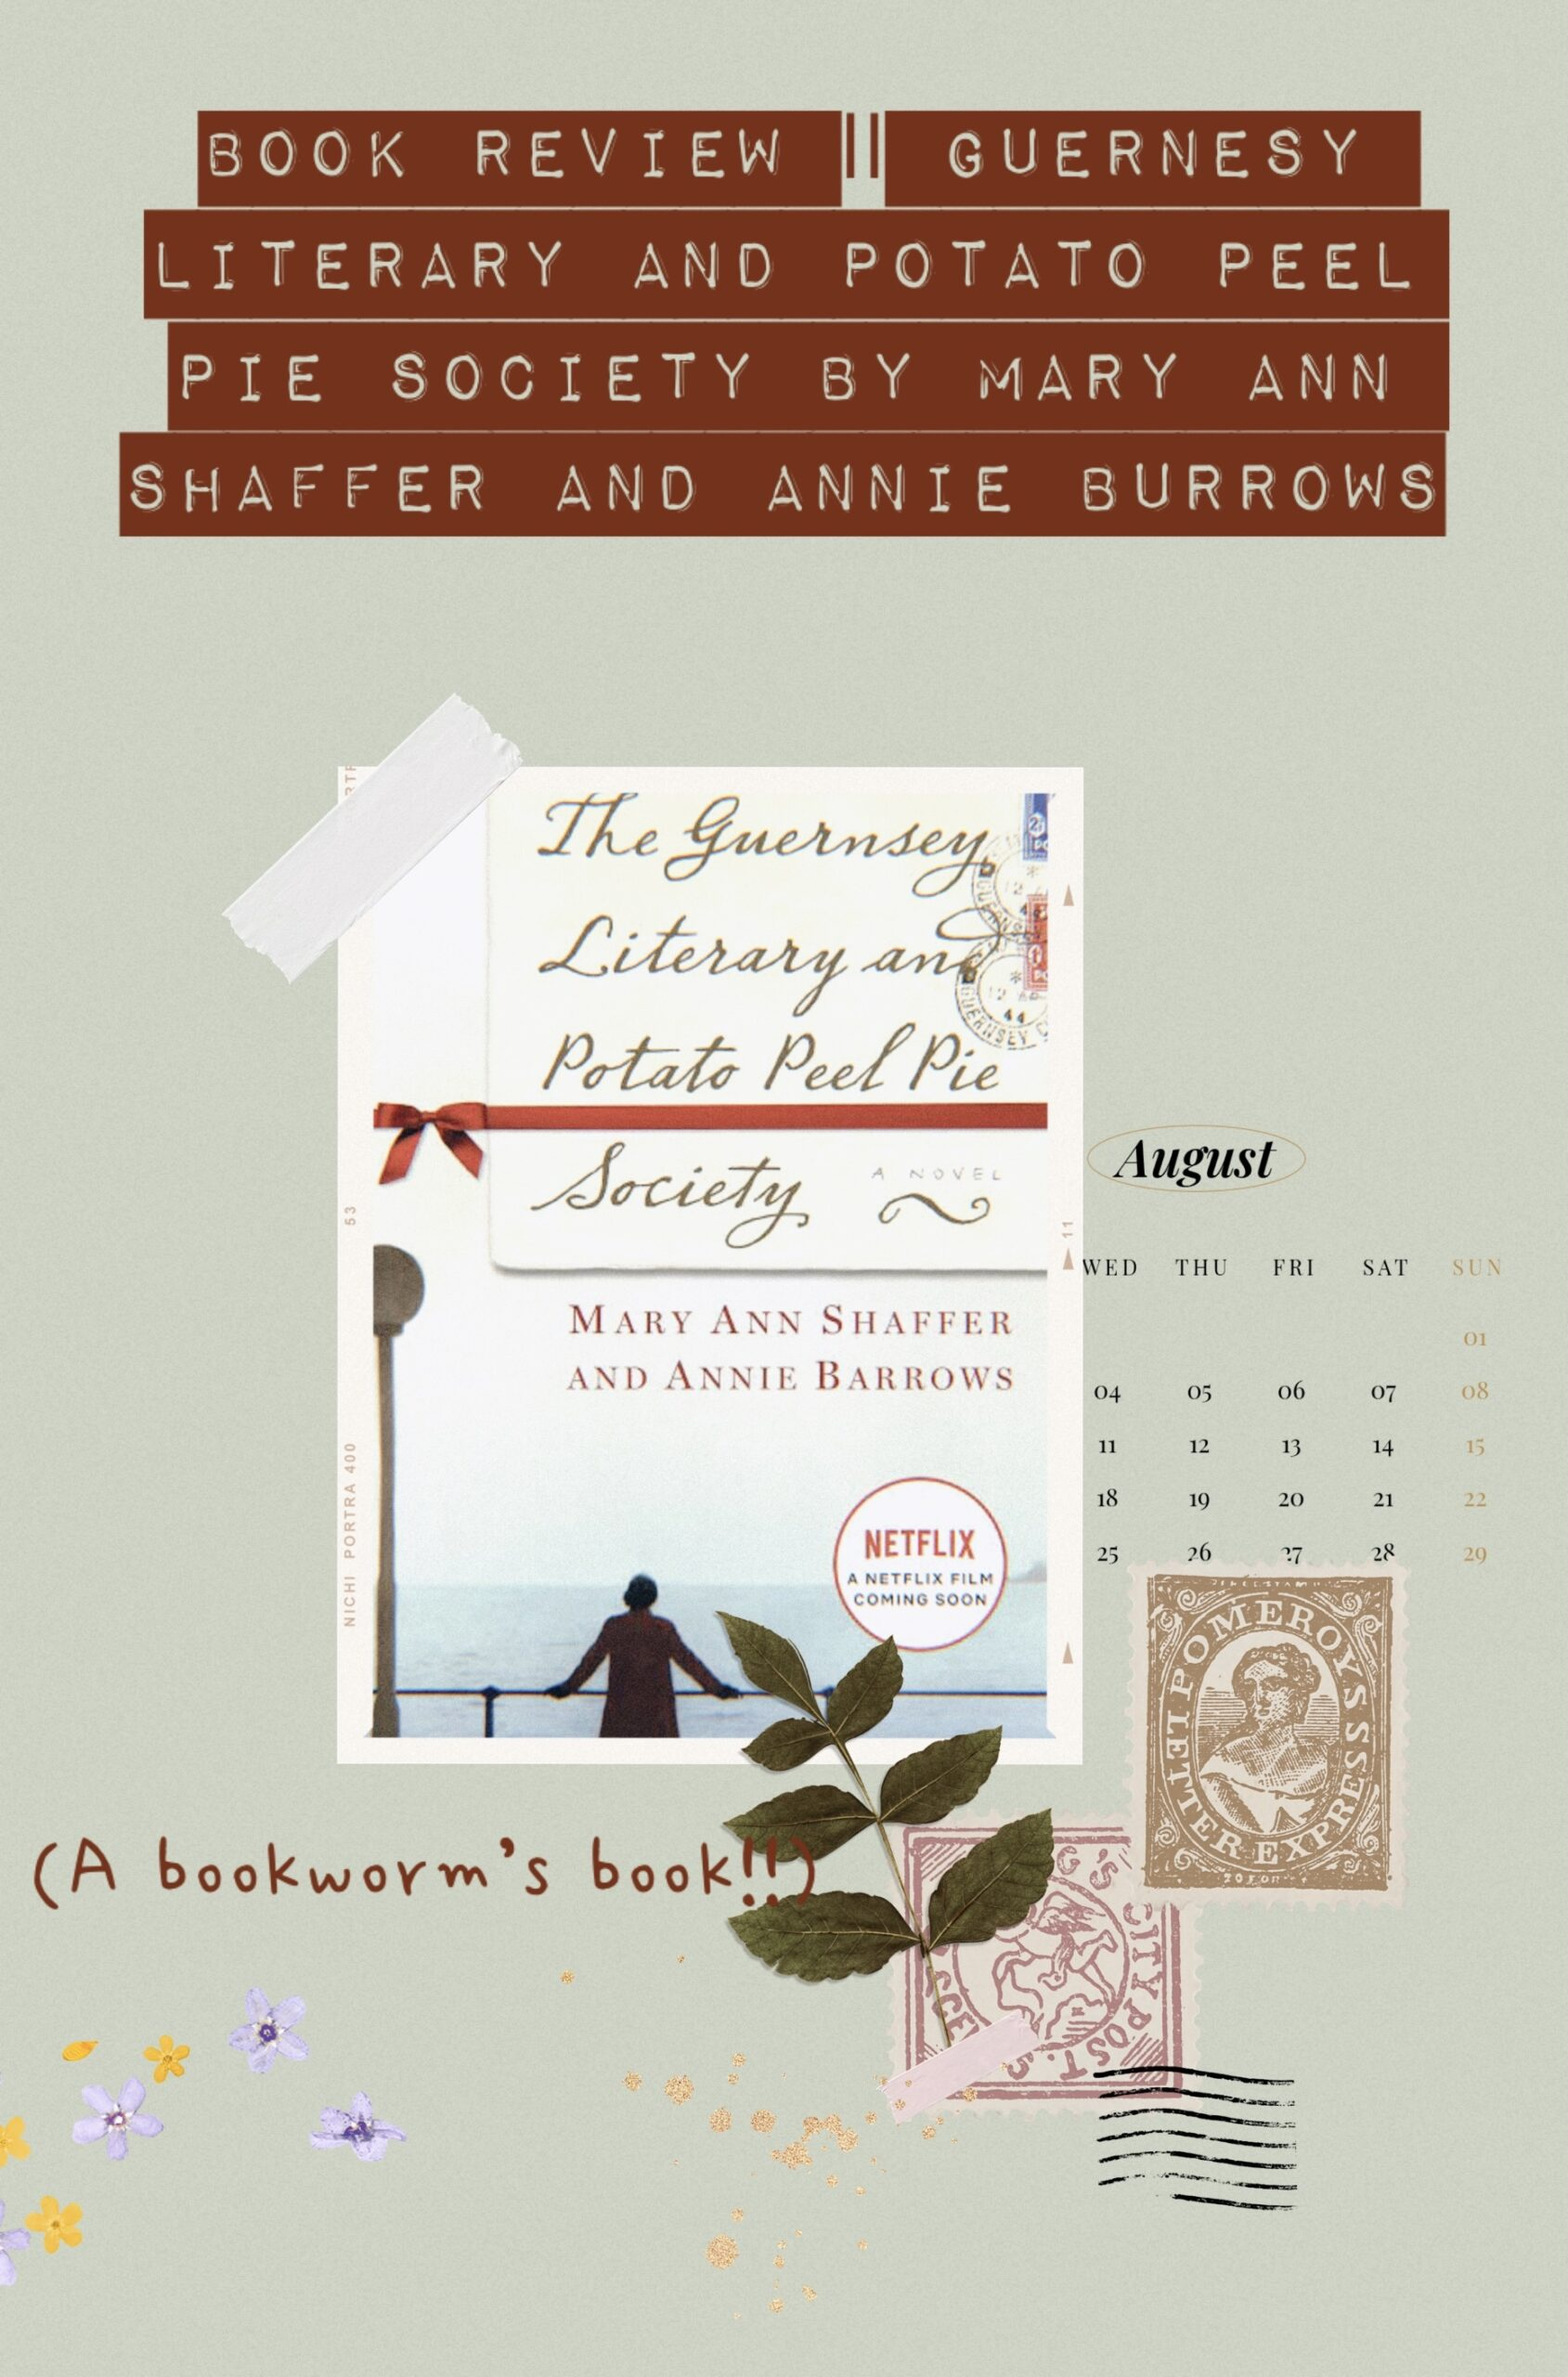 Book Review The Guernesy Literary and Potato Peel Pie Society by Mary Ann Shaffer and Annie Barrows